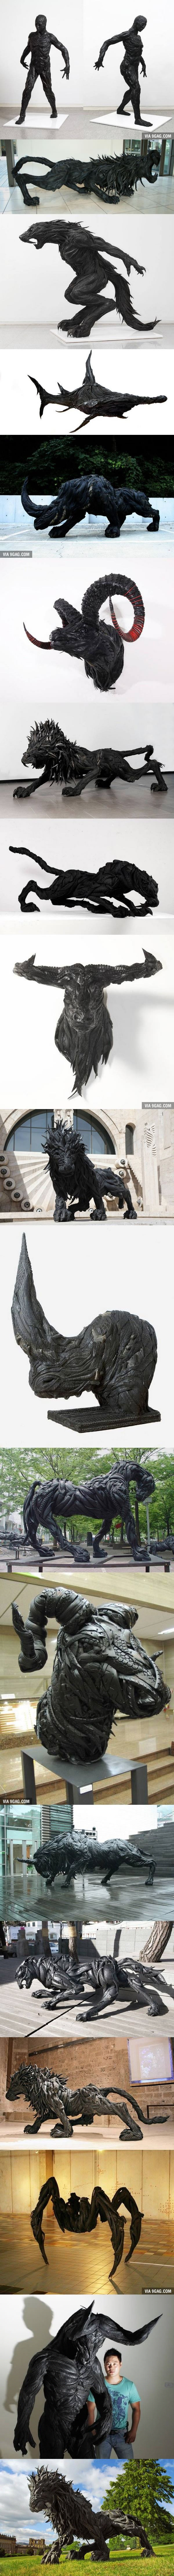 Fantasy   Whimsical   Strange   Mythical   Creative   Creatures   Dolls   Sculptures   Sculptures made from recycled old tires